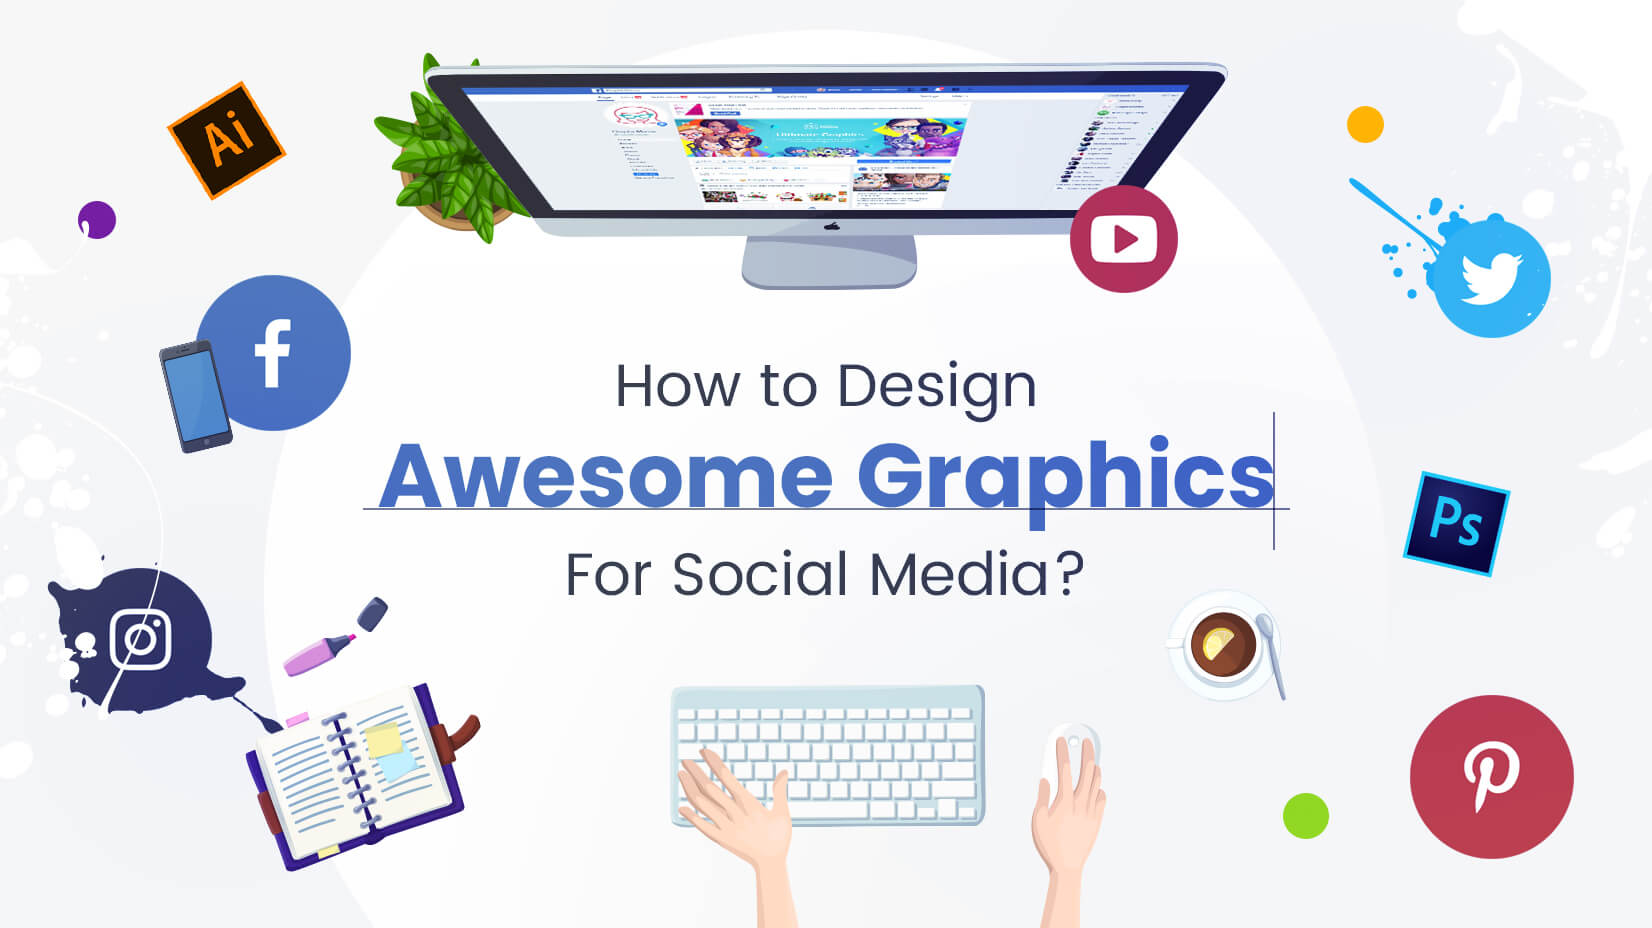 How To Design Awesome Graphics For Social Media Must Read Guide